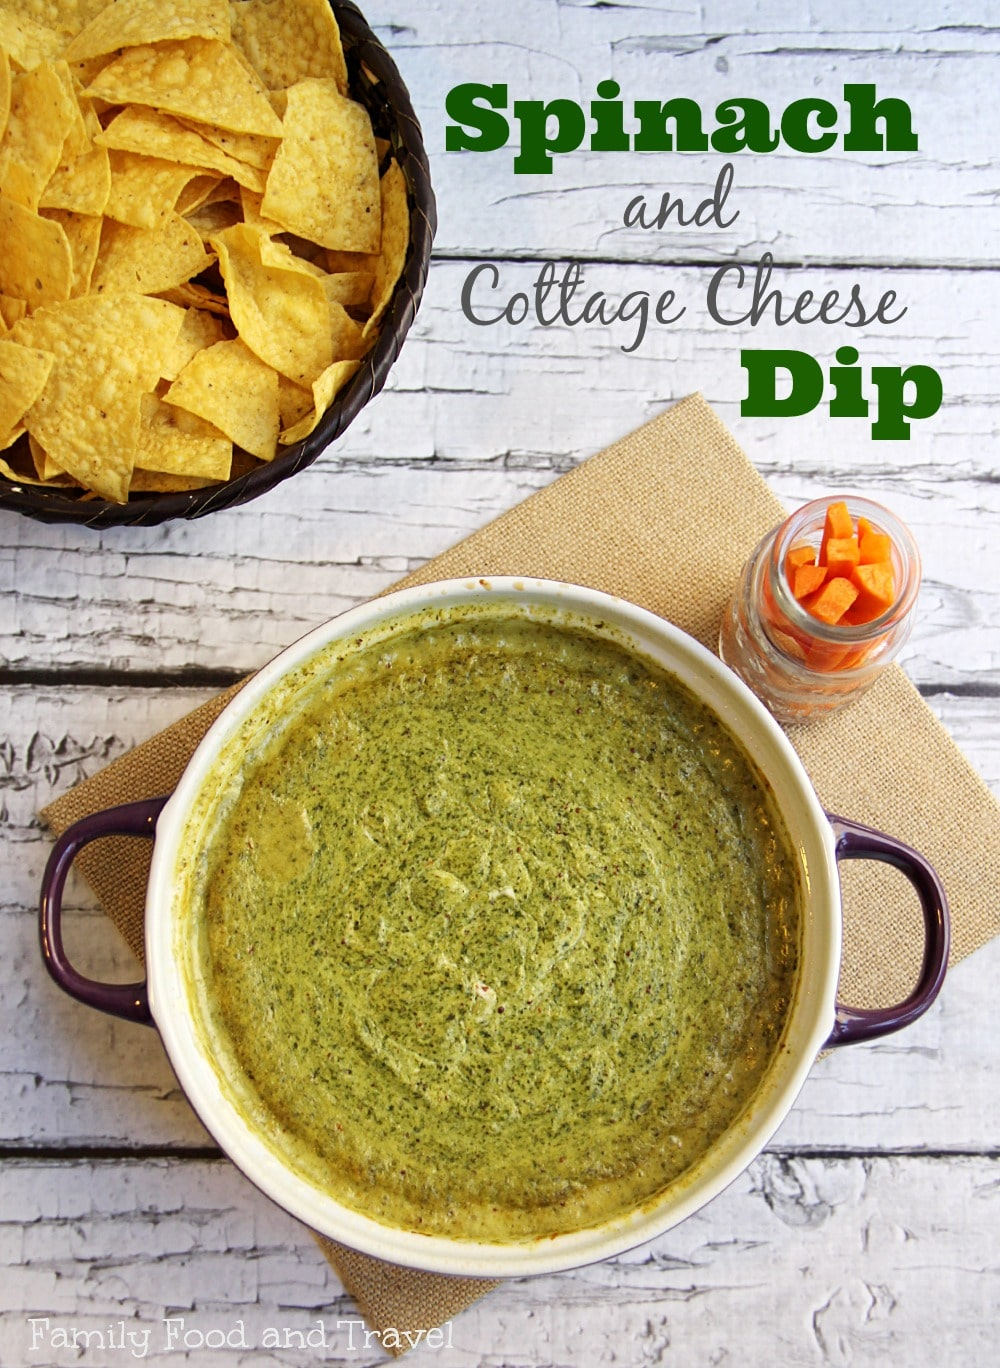 Hot Cottage Cheese Spinach Dip